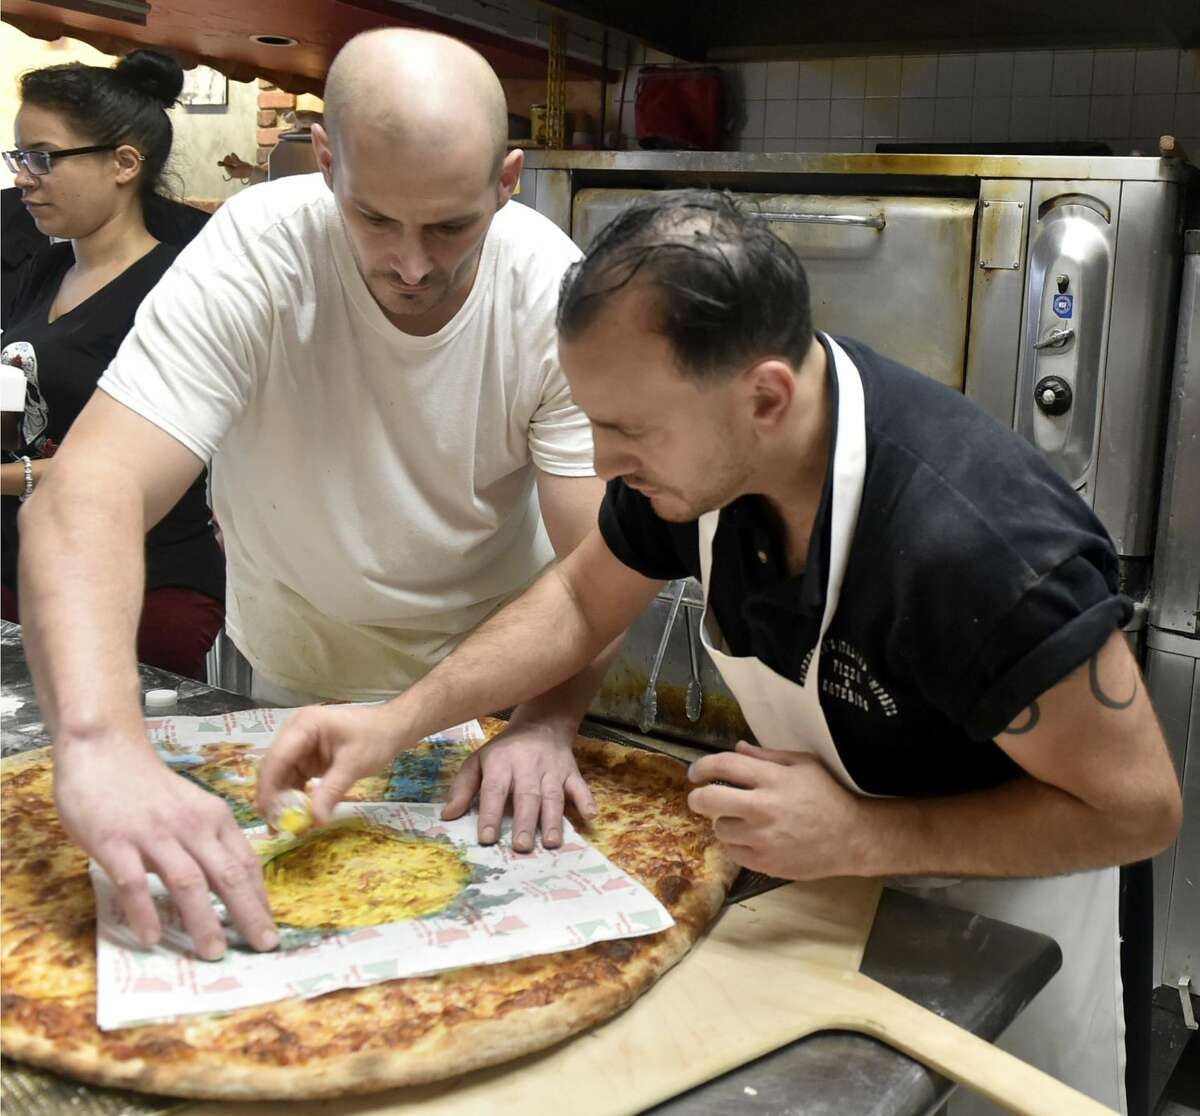 Pizza maker Chris Stackpole, left, and his boss Donato Cappetta, owner of Cappetta's Italian Imports, Pizza and Catering in West Haven, make a giant, 30-inch round pizza with an eatable blue-and-gold ribbon on top to honor nearby Forest School for being named as just one of four national Blue Ribbon Schools in Connecticut.